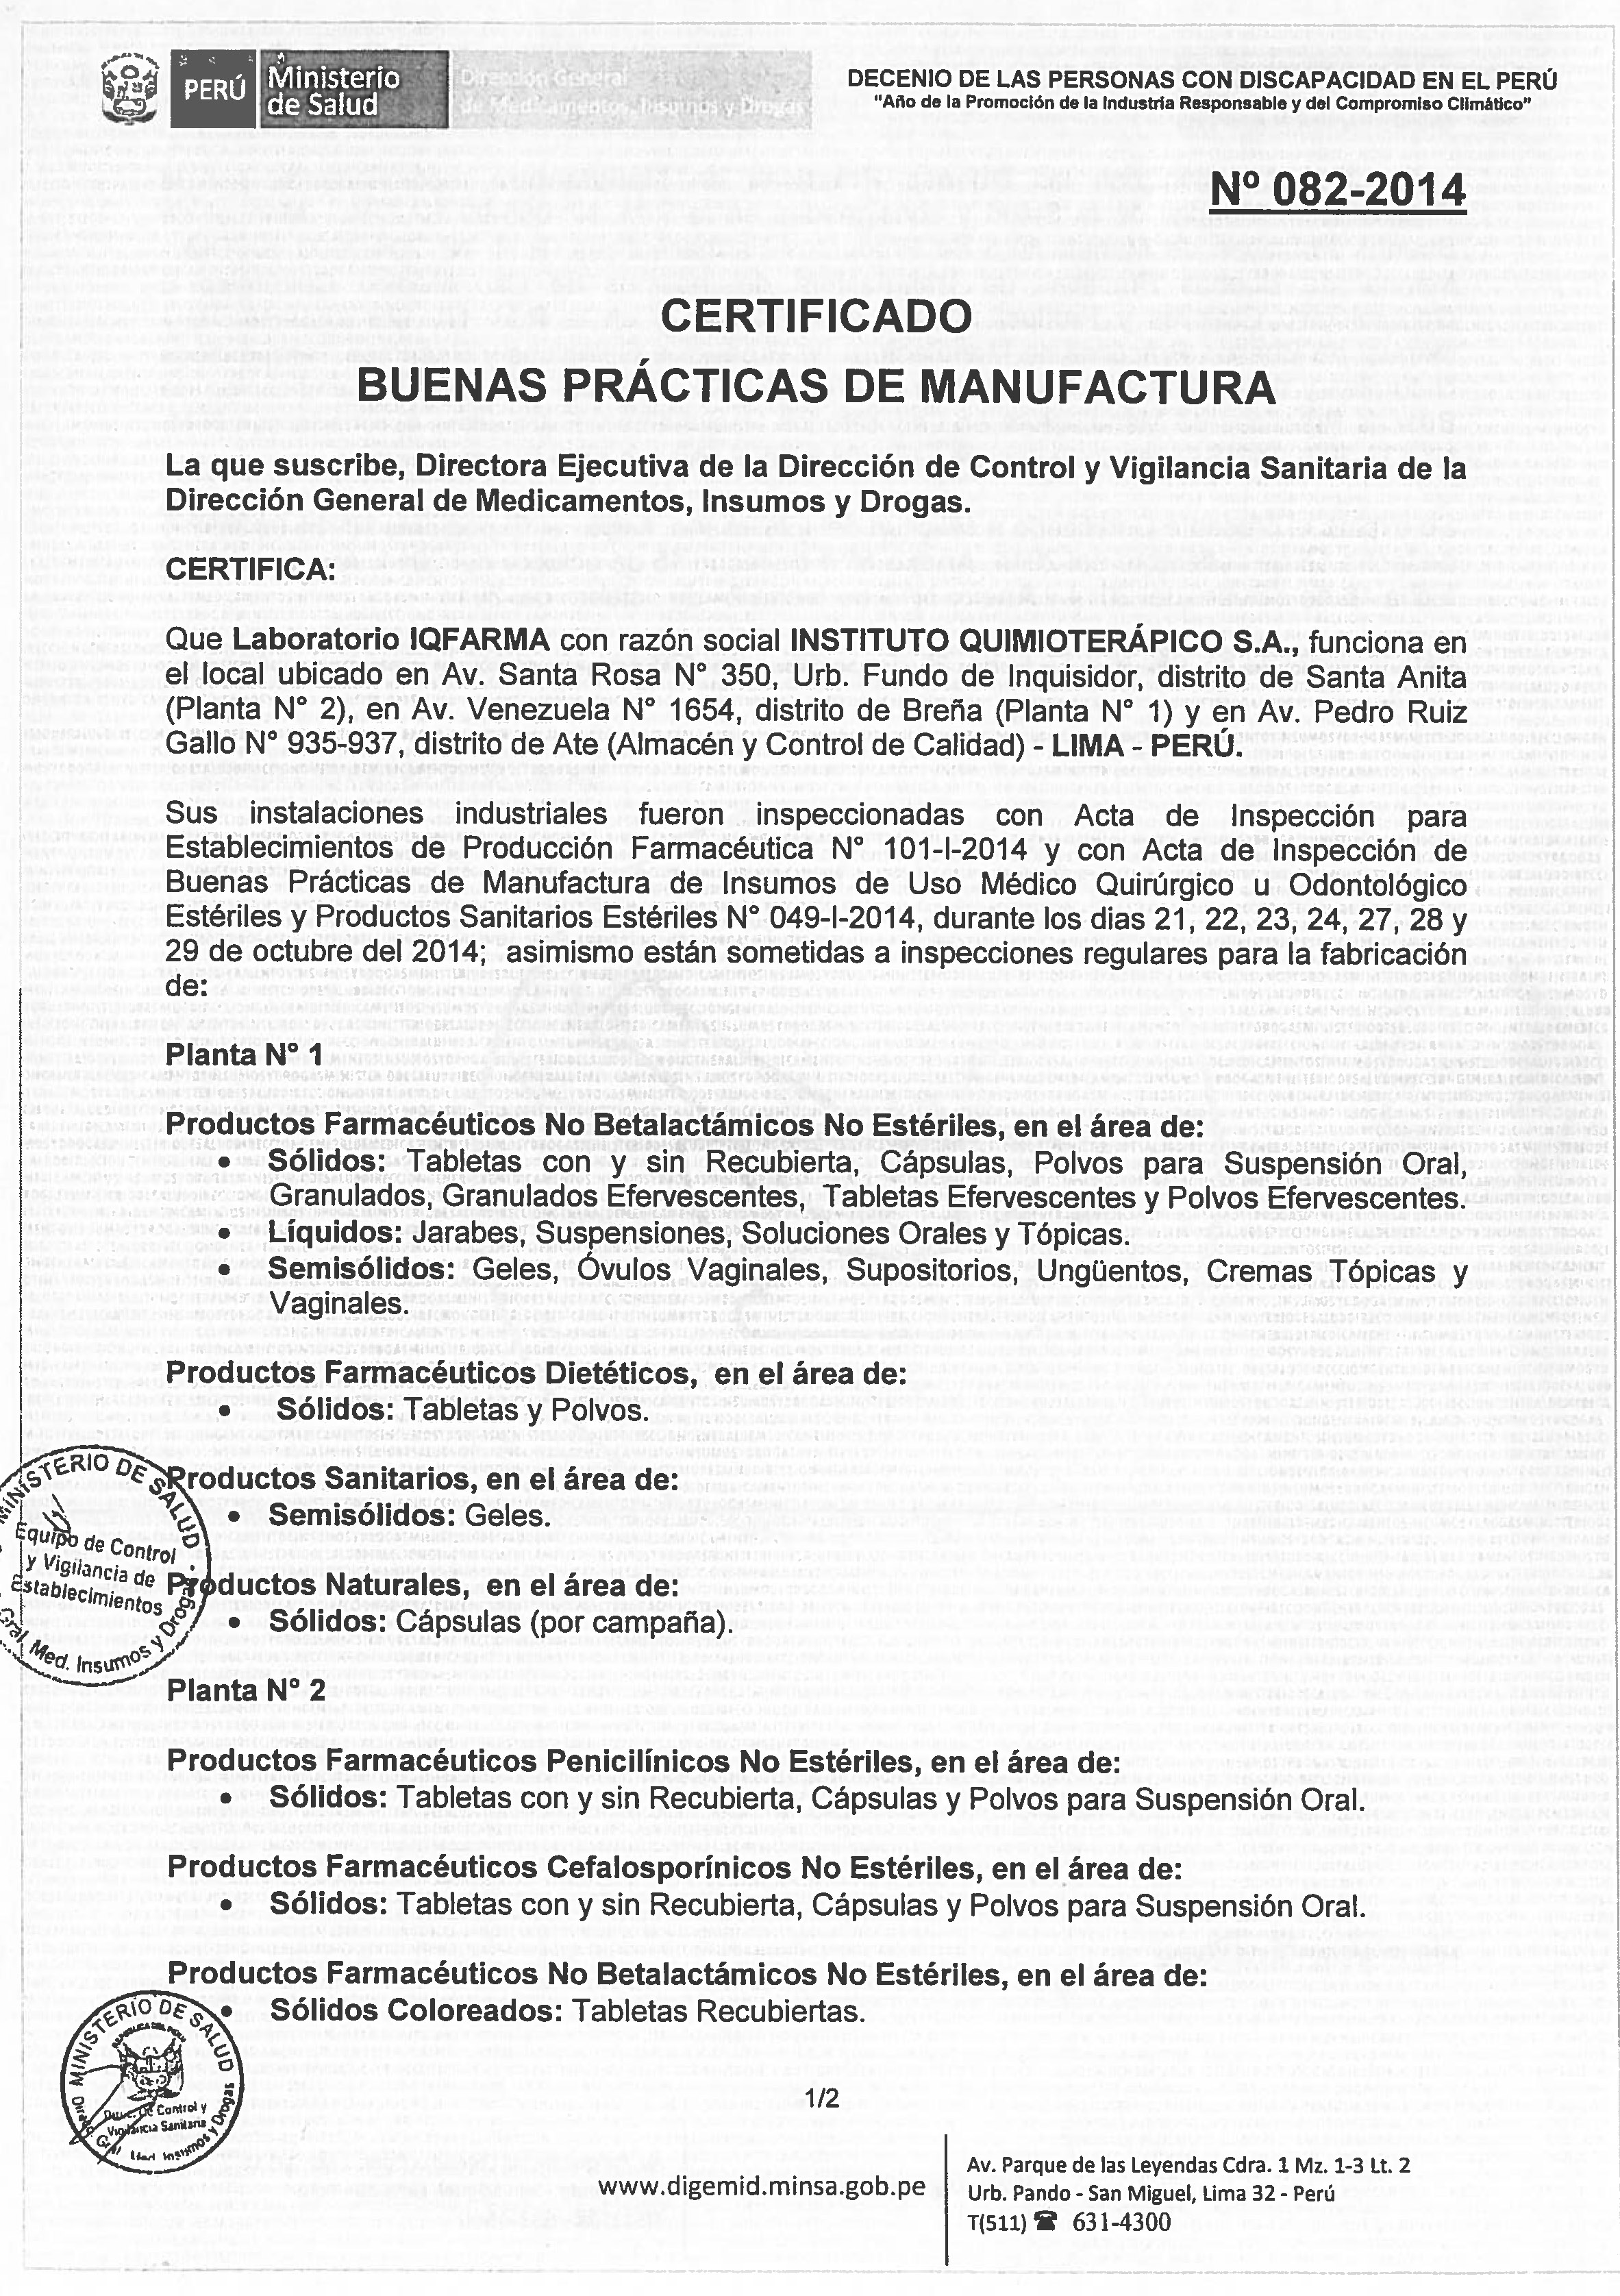 Certificadp BPM pag1